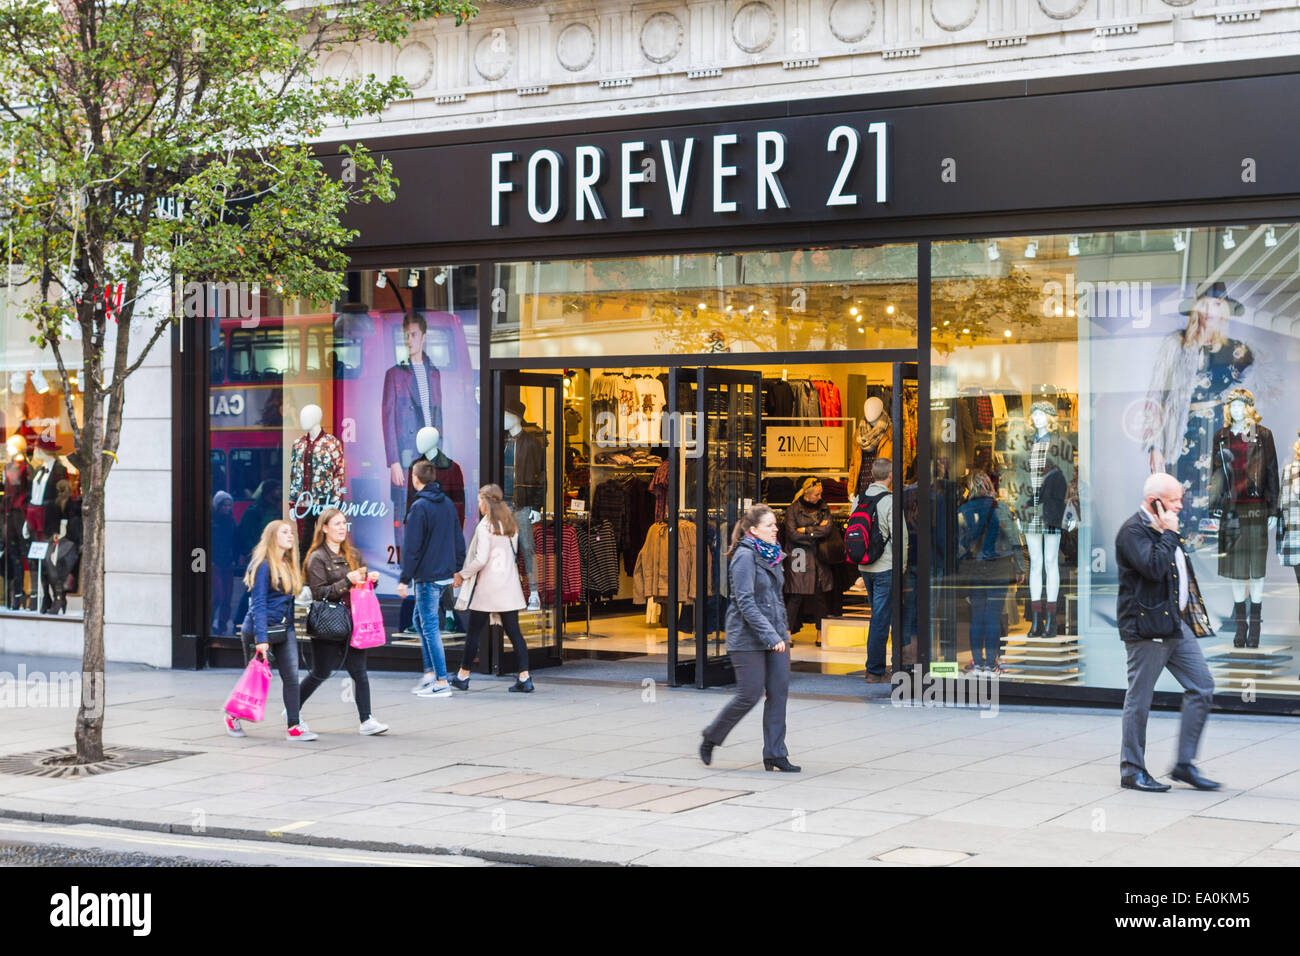 forever 21 stock photos forever 21 stock images alamy